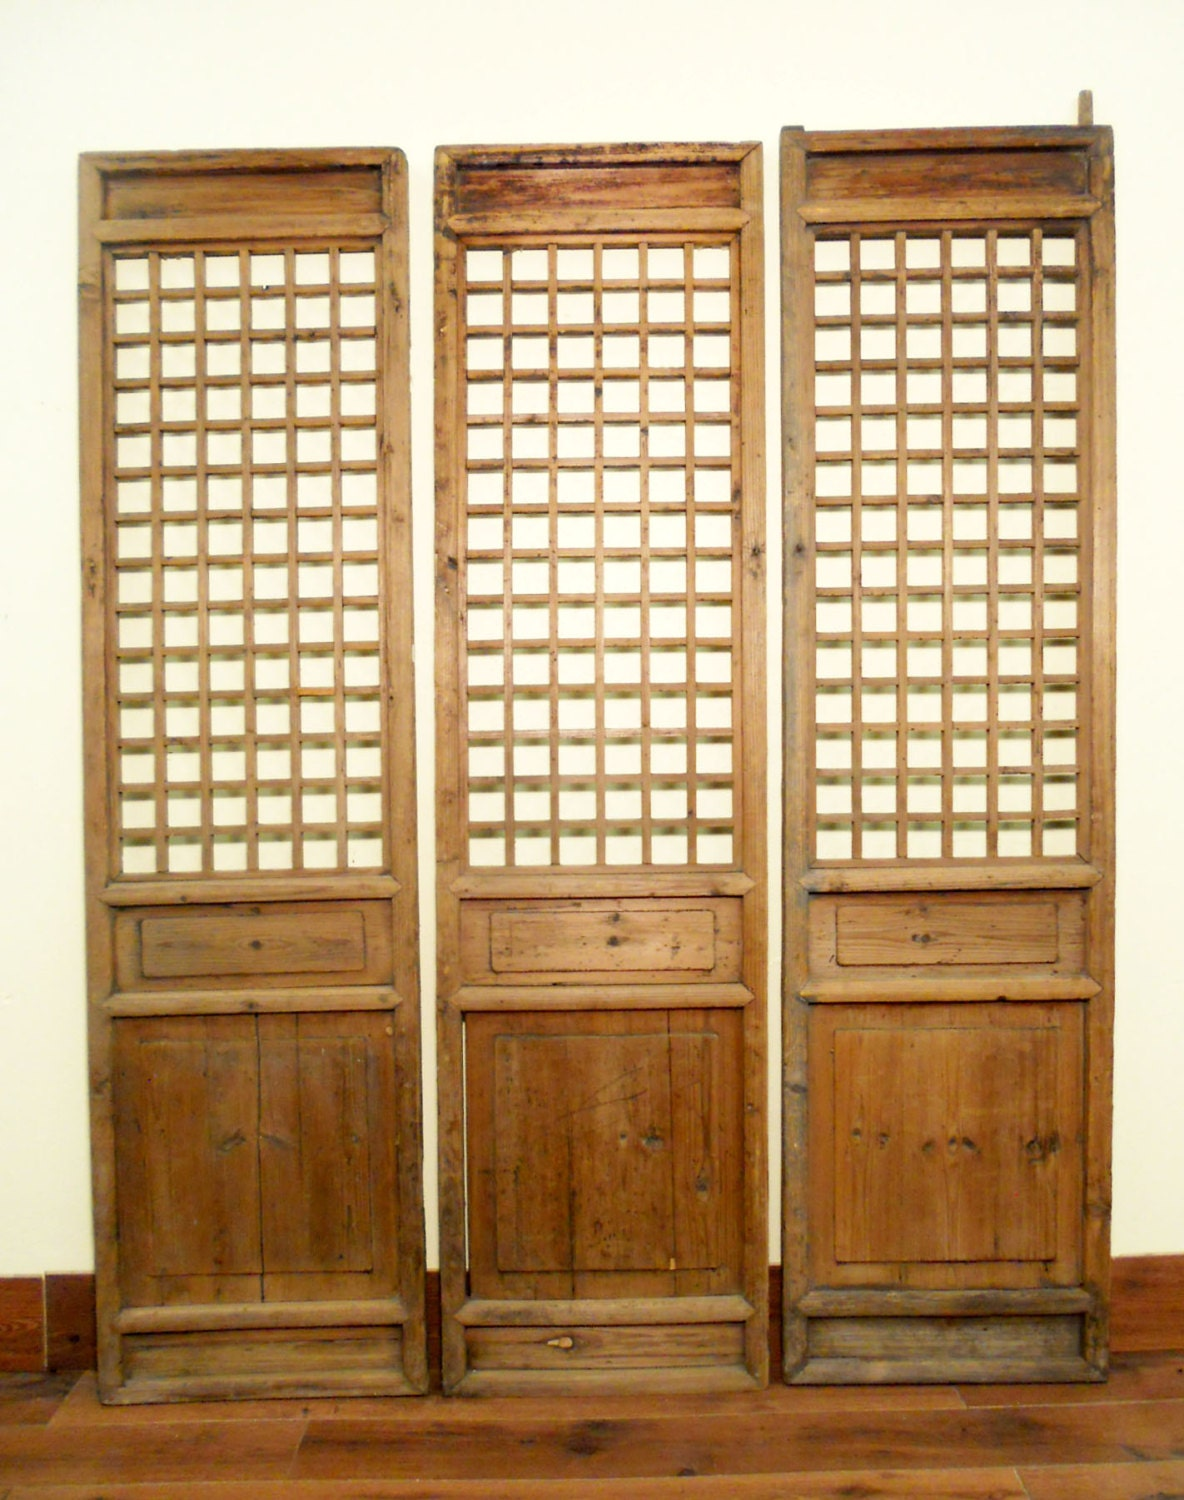 Antique chinese screen panels 5472 temple doors - Screens for doors that hang ...